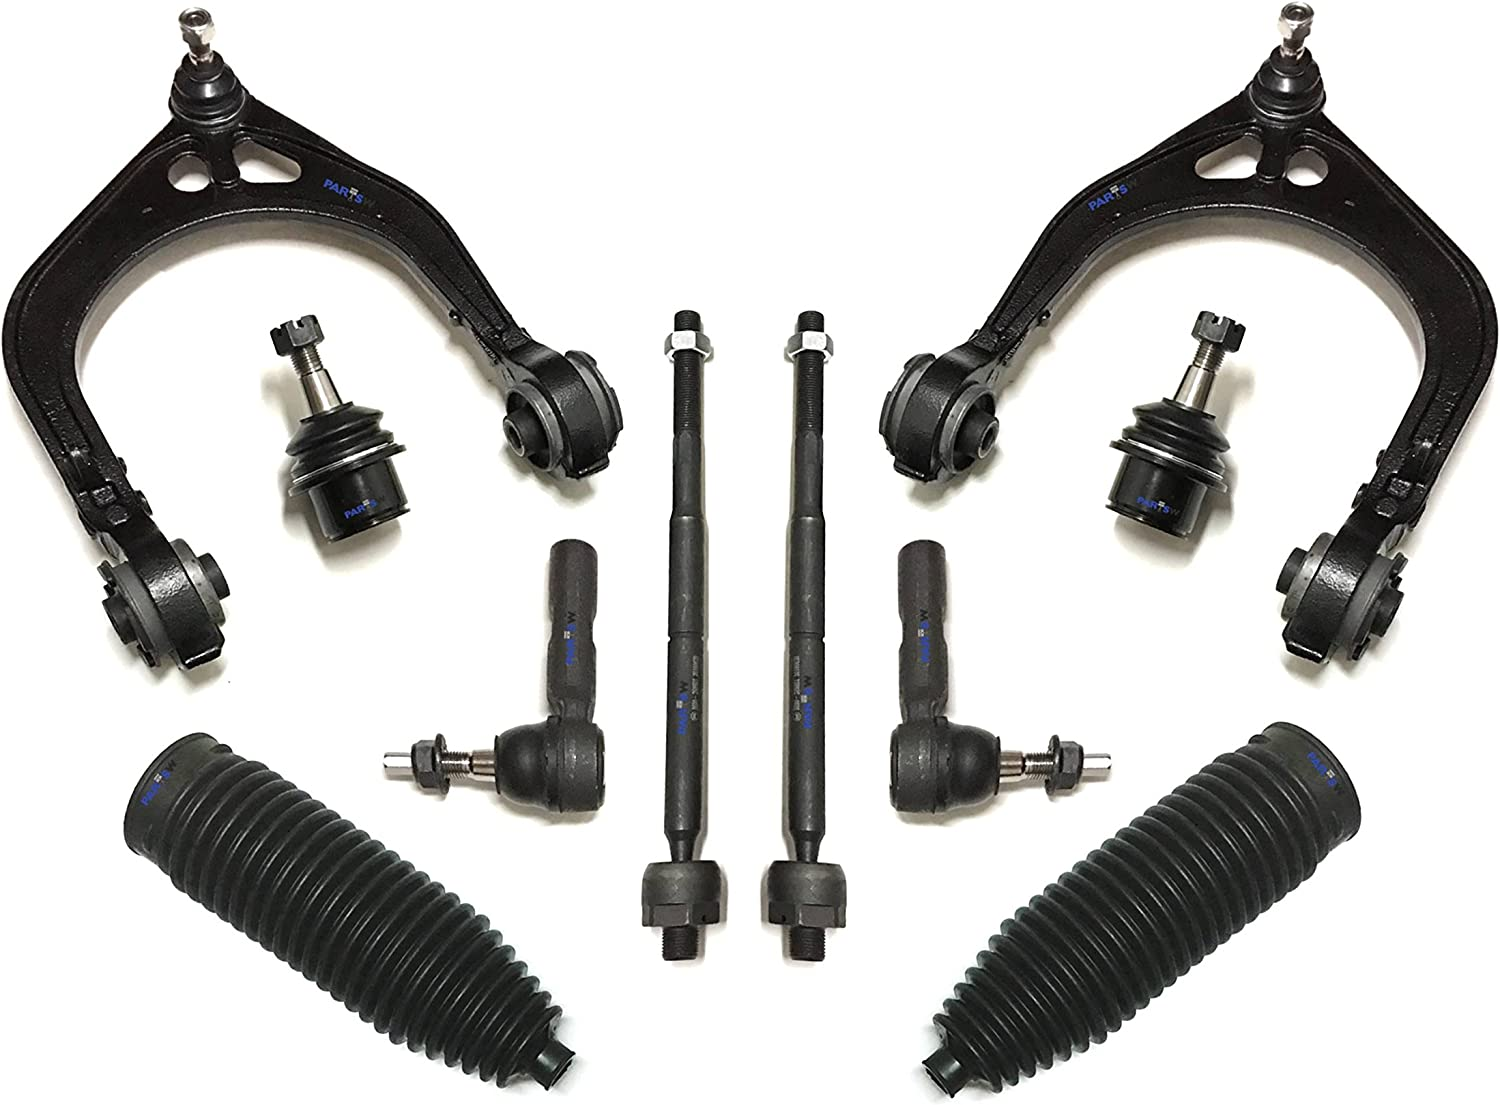 Adjustable PartsW 10 Pc Suspension Kit For Chrysler 300 Dodge Charger Challenger /& Magnum Front Lower /& Upper Control Arm Sway Bar Link Lower Ball Joints